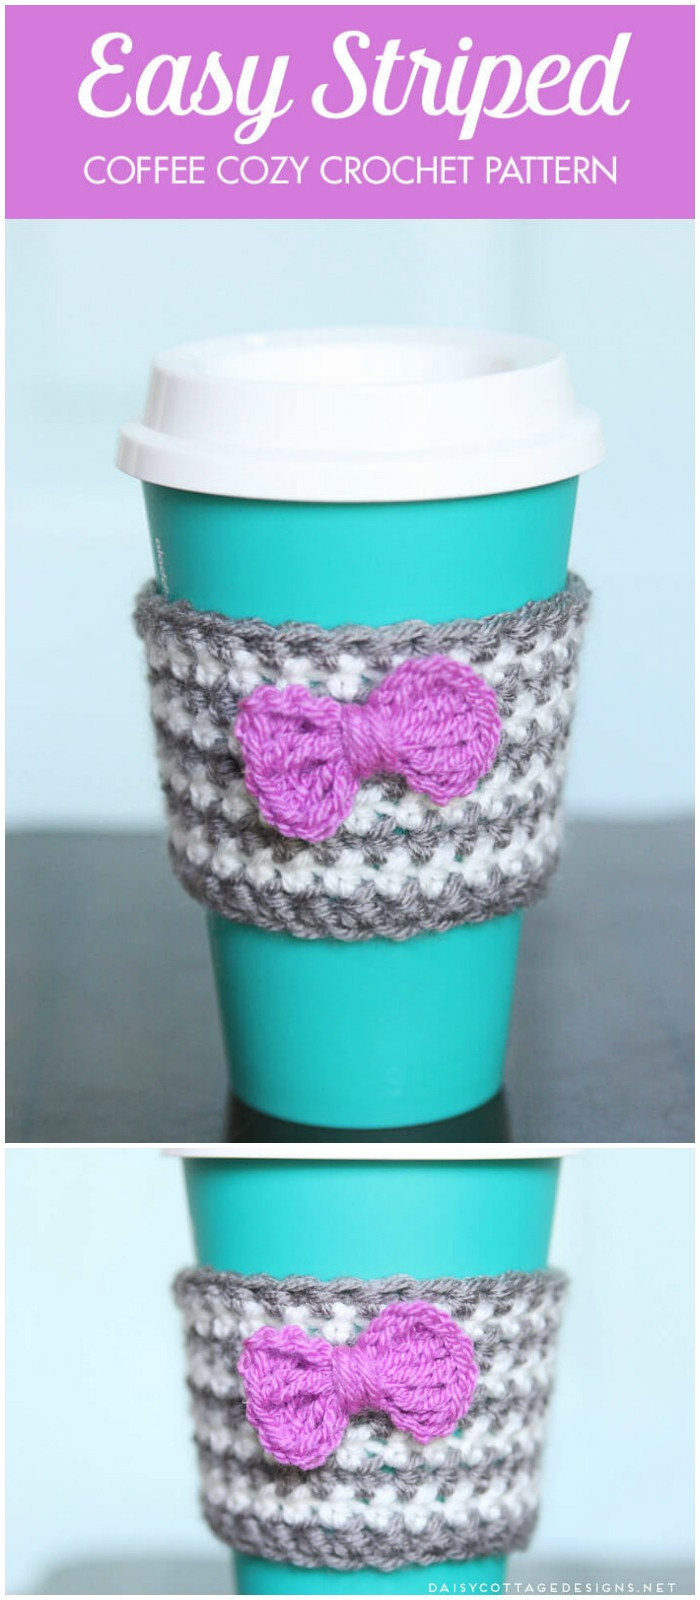 Crochet Coffee Cup Cozy Fresh 8 Crochet Cozy Patterns Free Crochet Patterns • Diy Home Of Crochet Coffee Cup Cozy New Crochet Tea Cozy Coffee Cup Sleeve Coffee Sleeve Mug Cozy